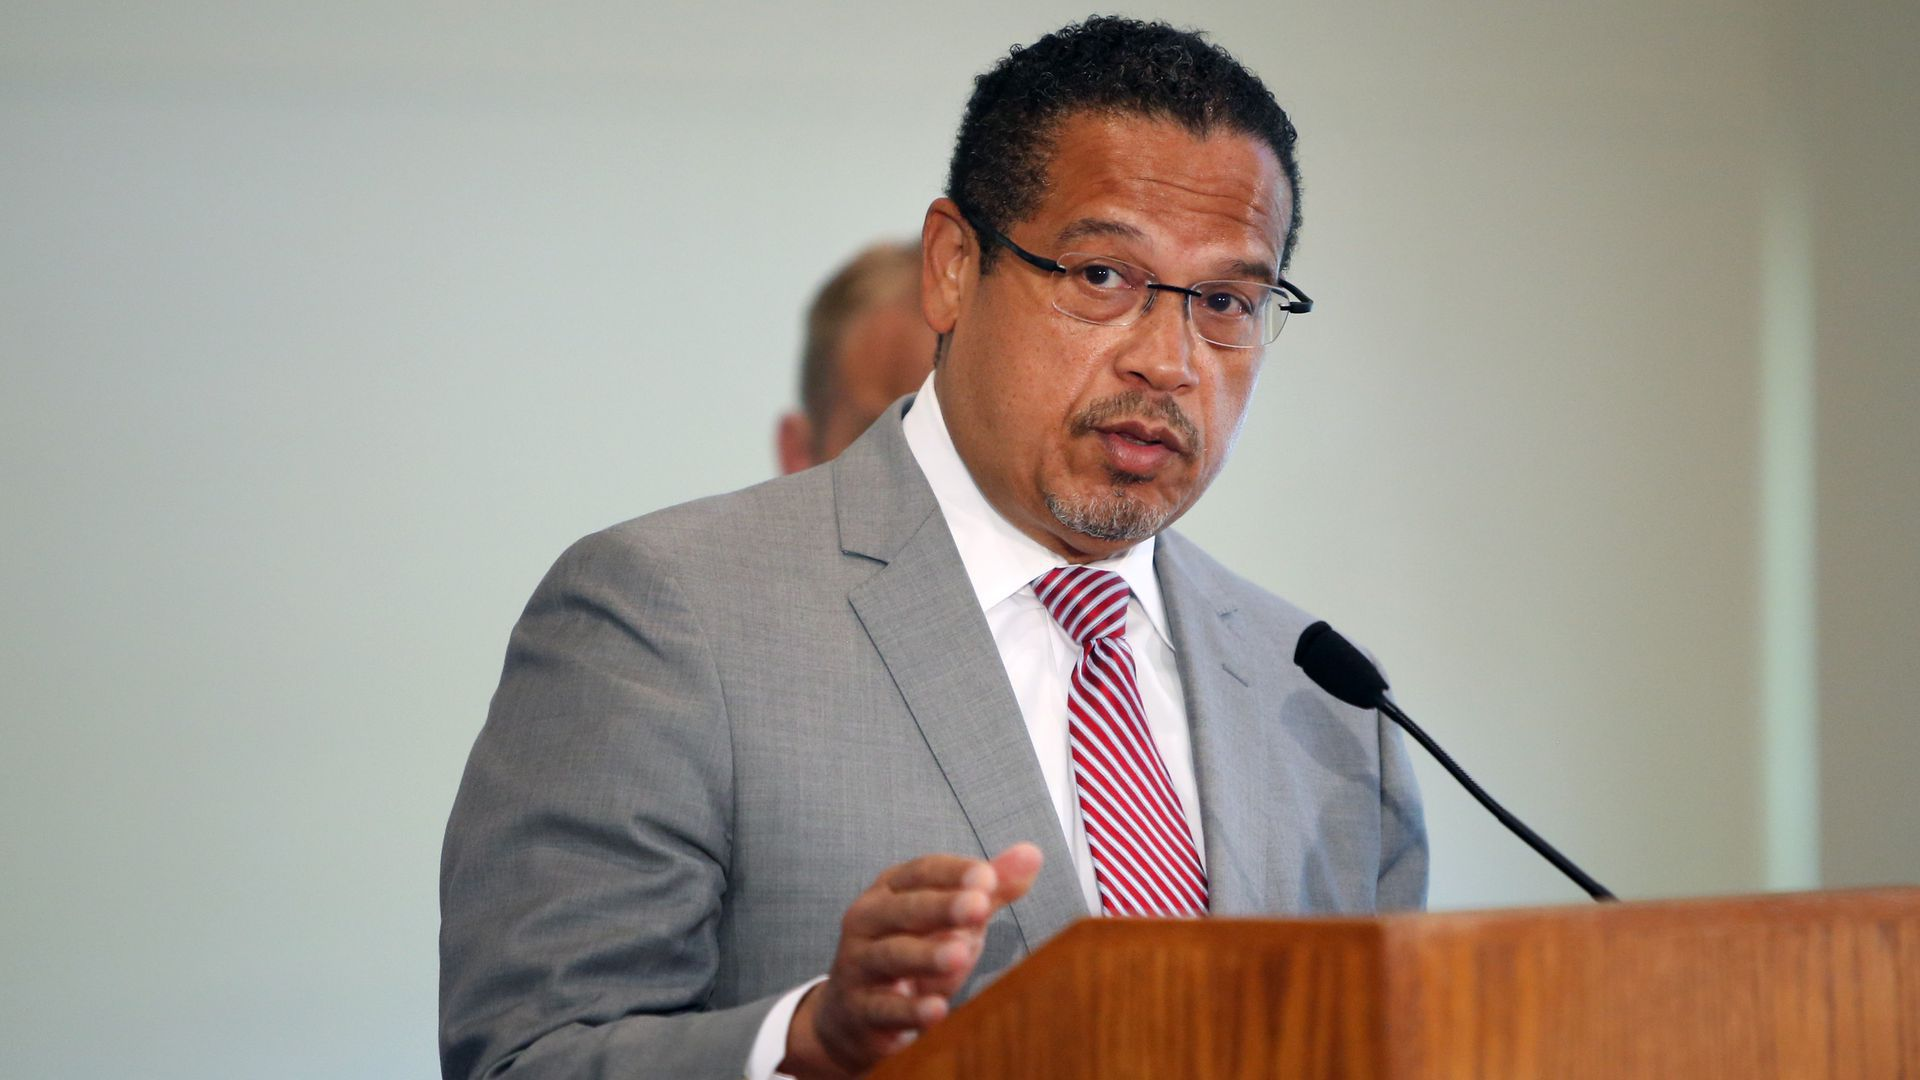 A photo of Minnesota Attorney General Keith Ellison speaking at a podium.